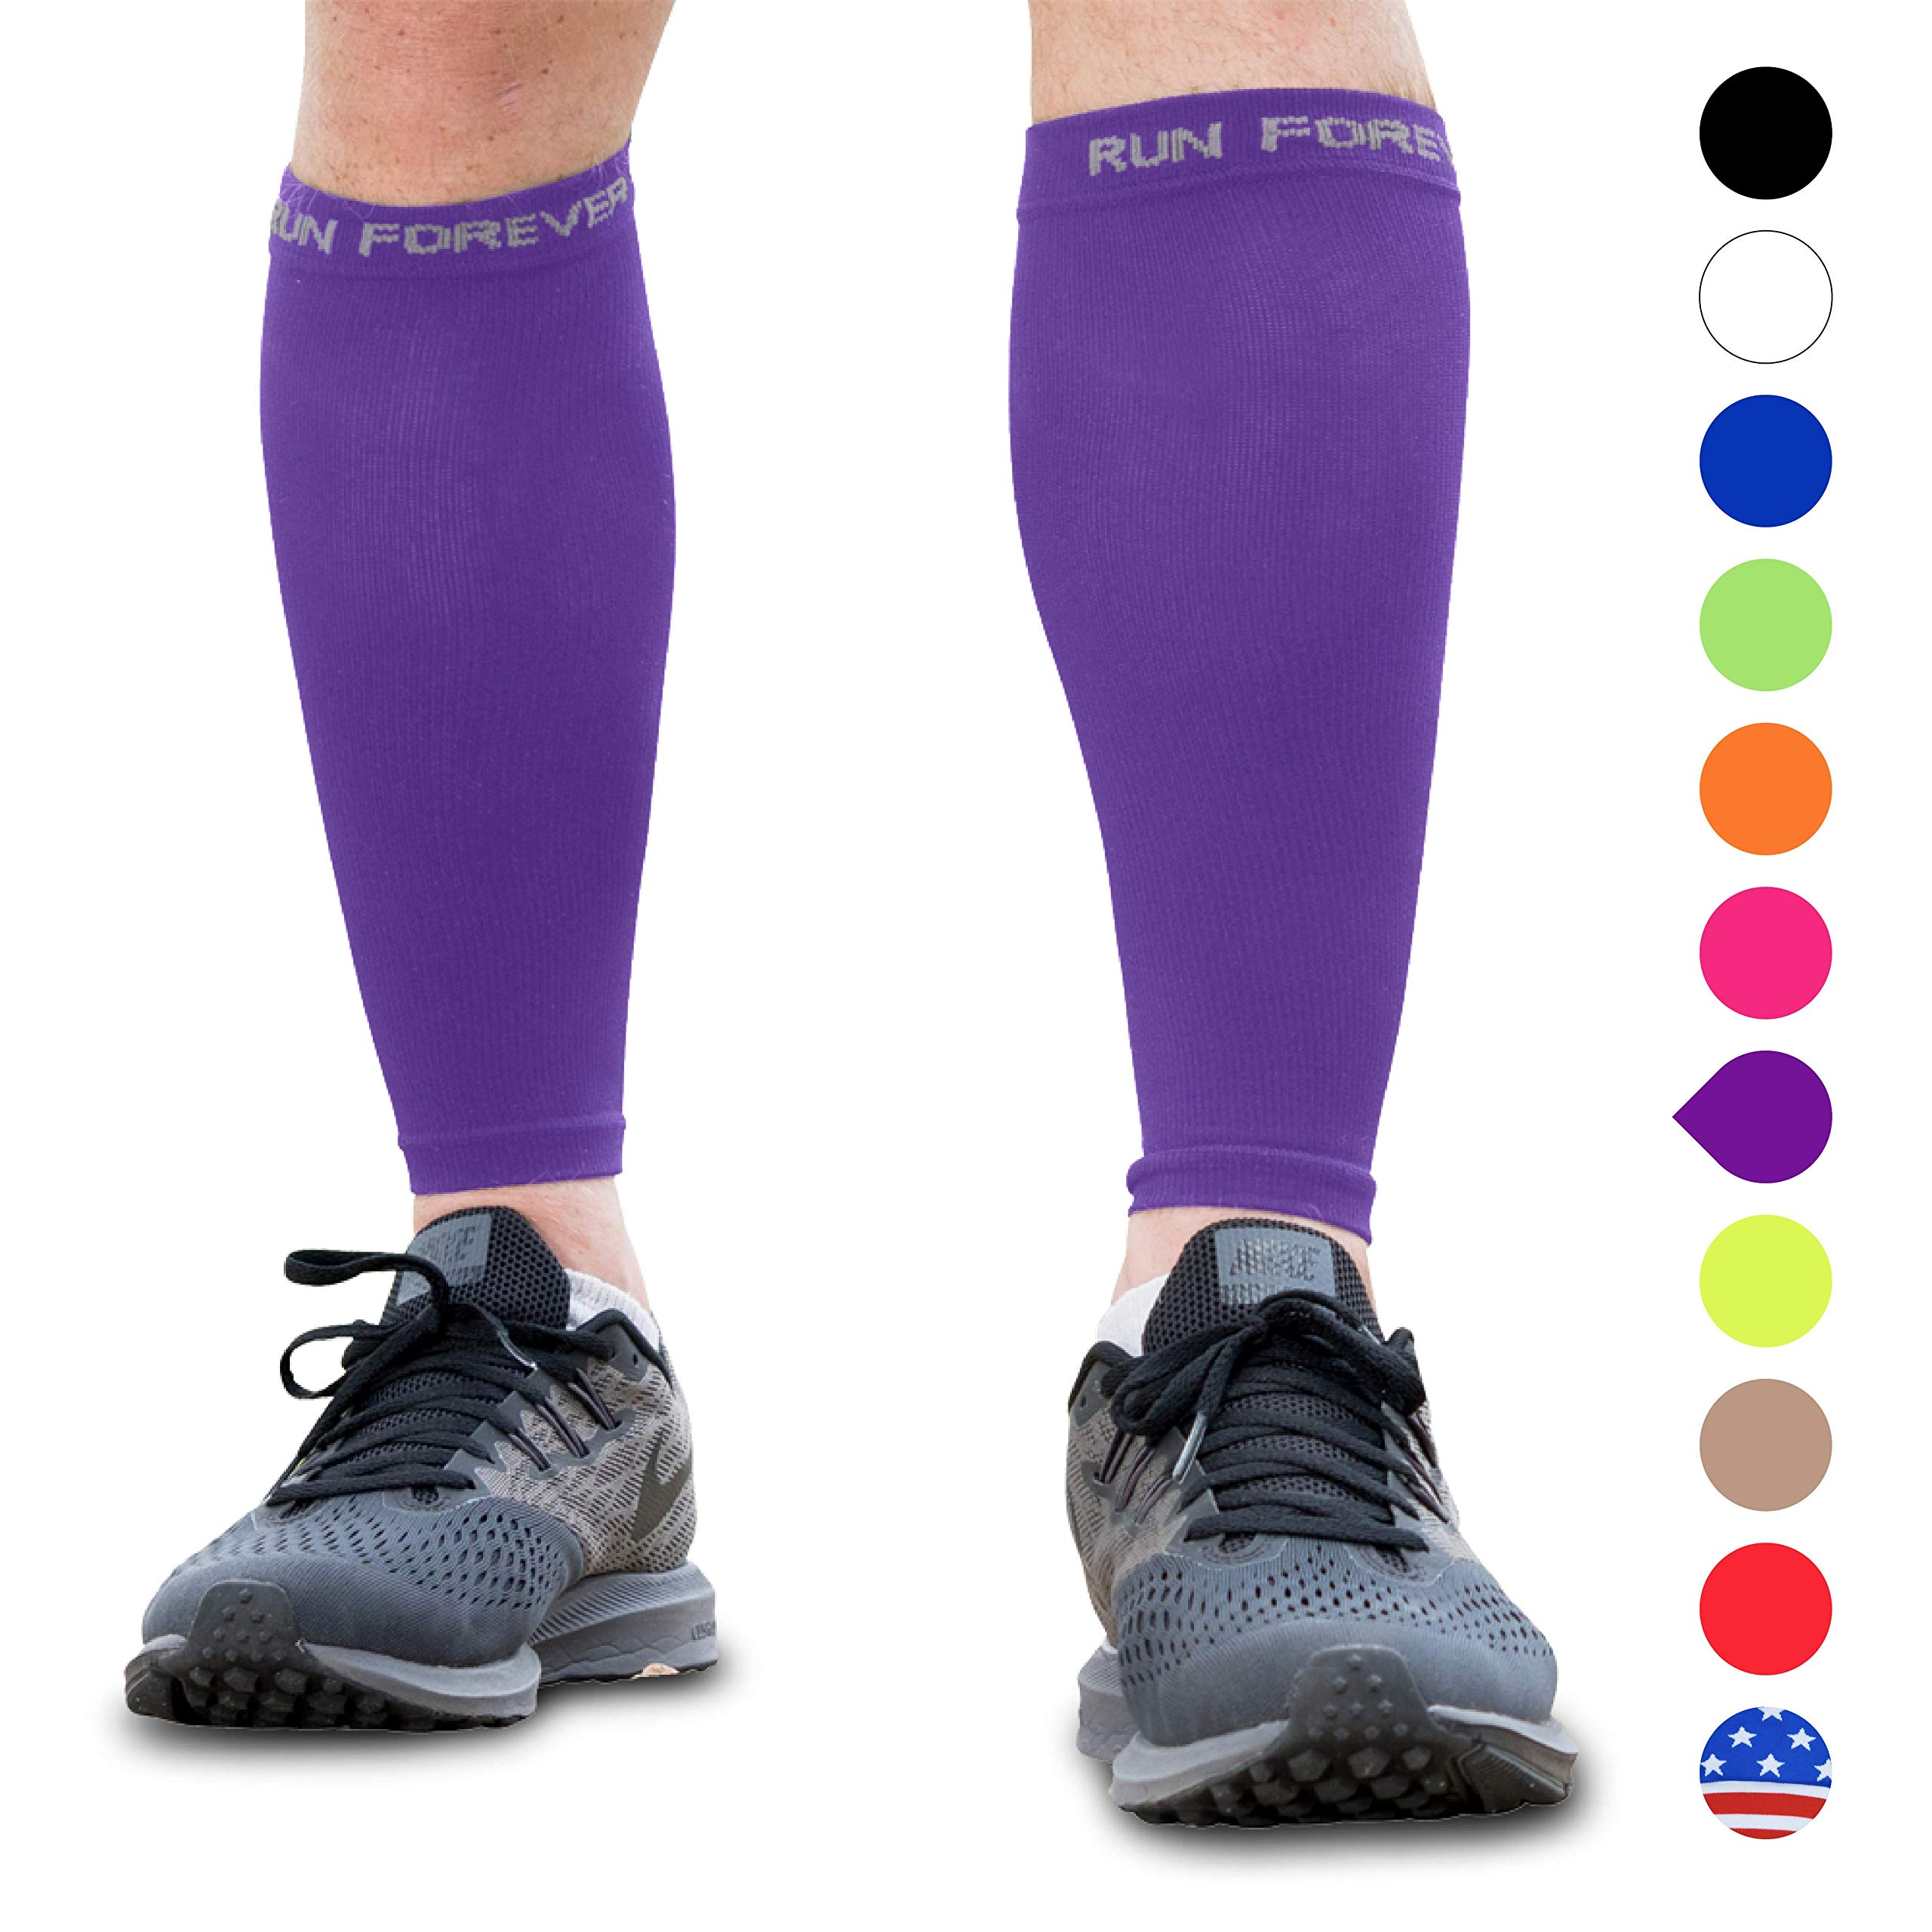 Calf Compression Sleeves - Leg Compression Socks for Runners, Shin Splint, Varicose Vein & Calf Pain Relief - Calf Guard Great for Running, Cycling, Maternity, Travel, Nurses (Purple, Small)